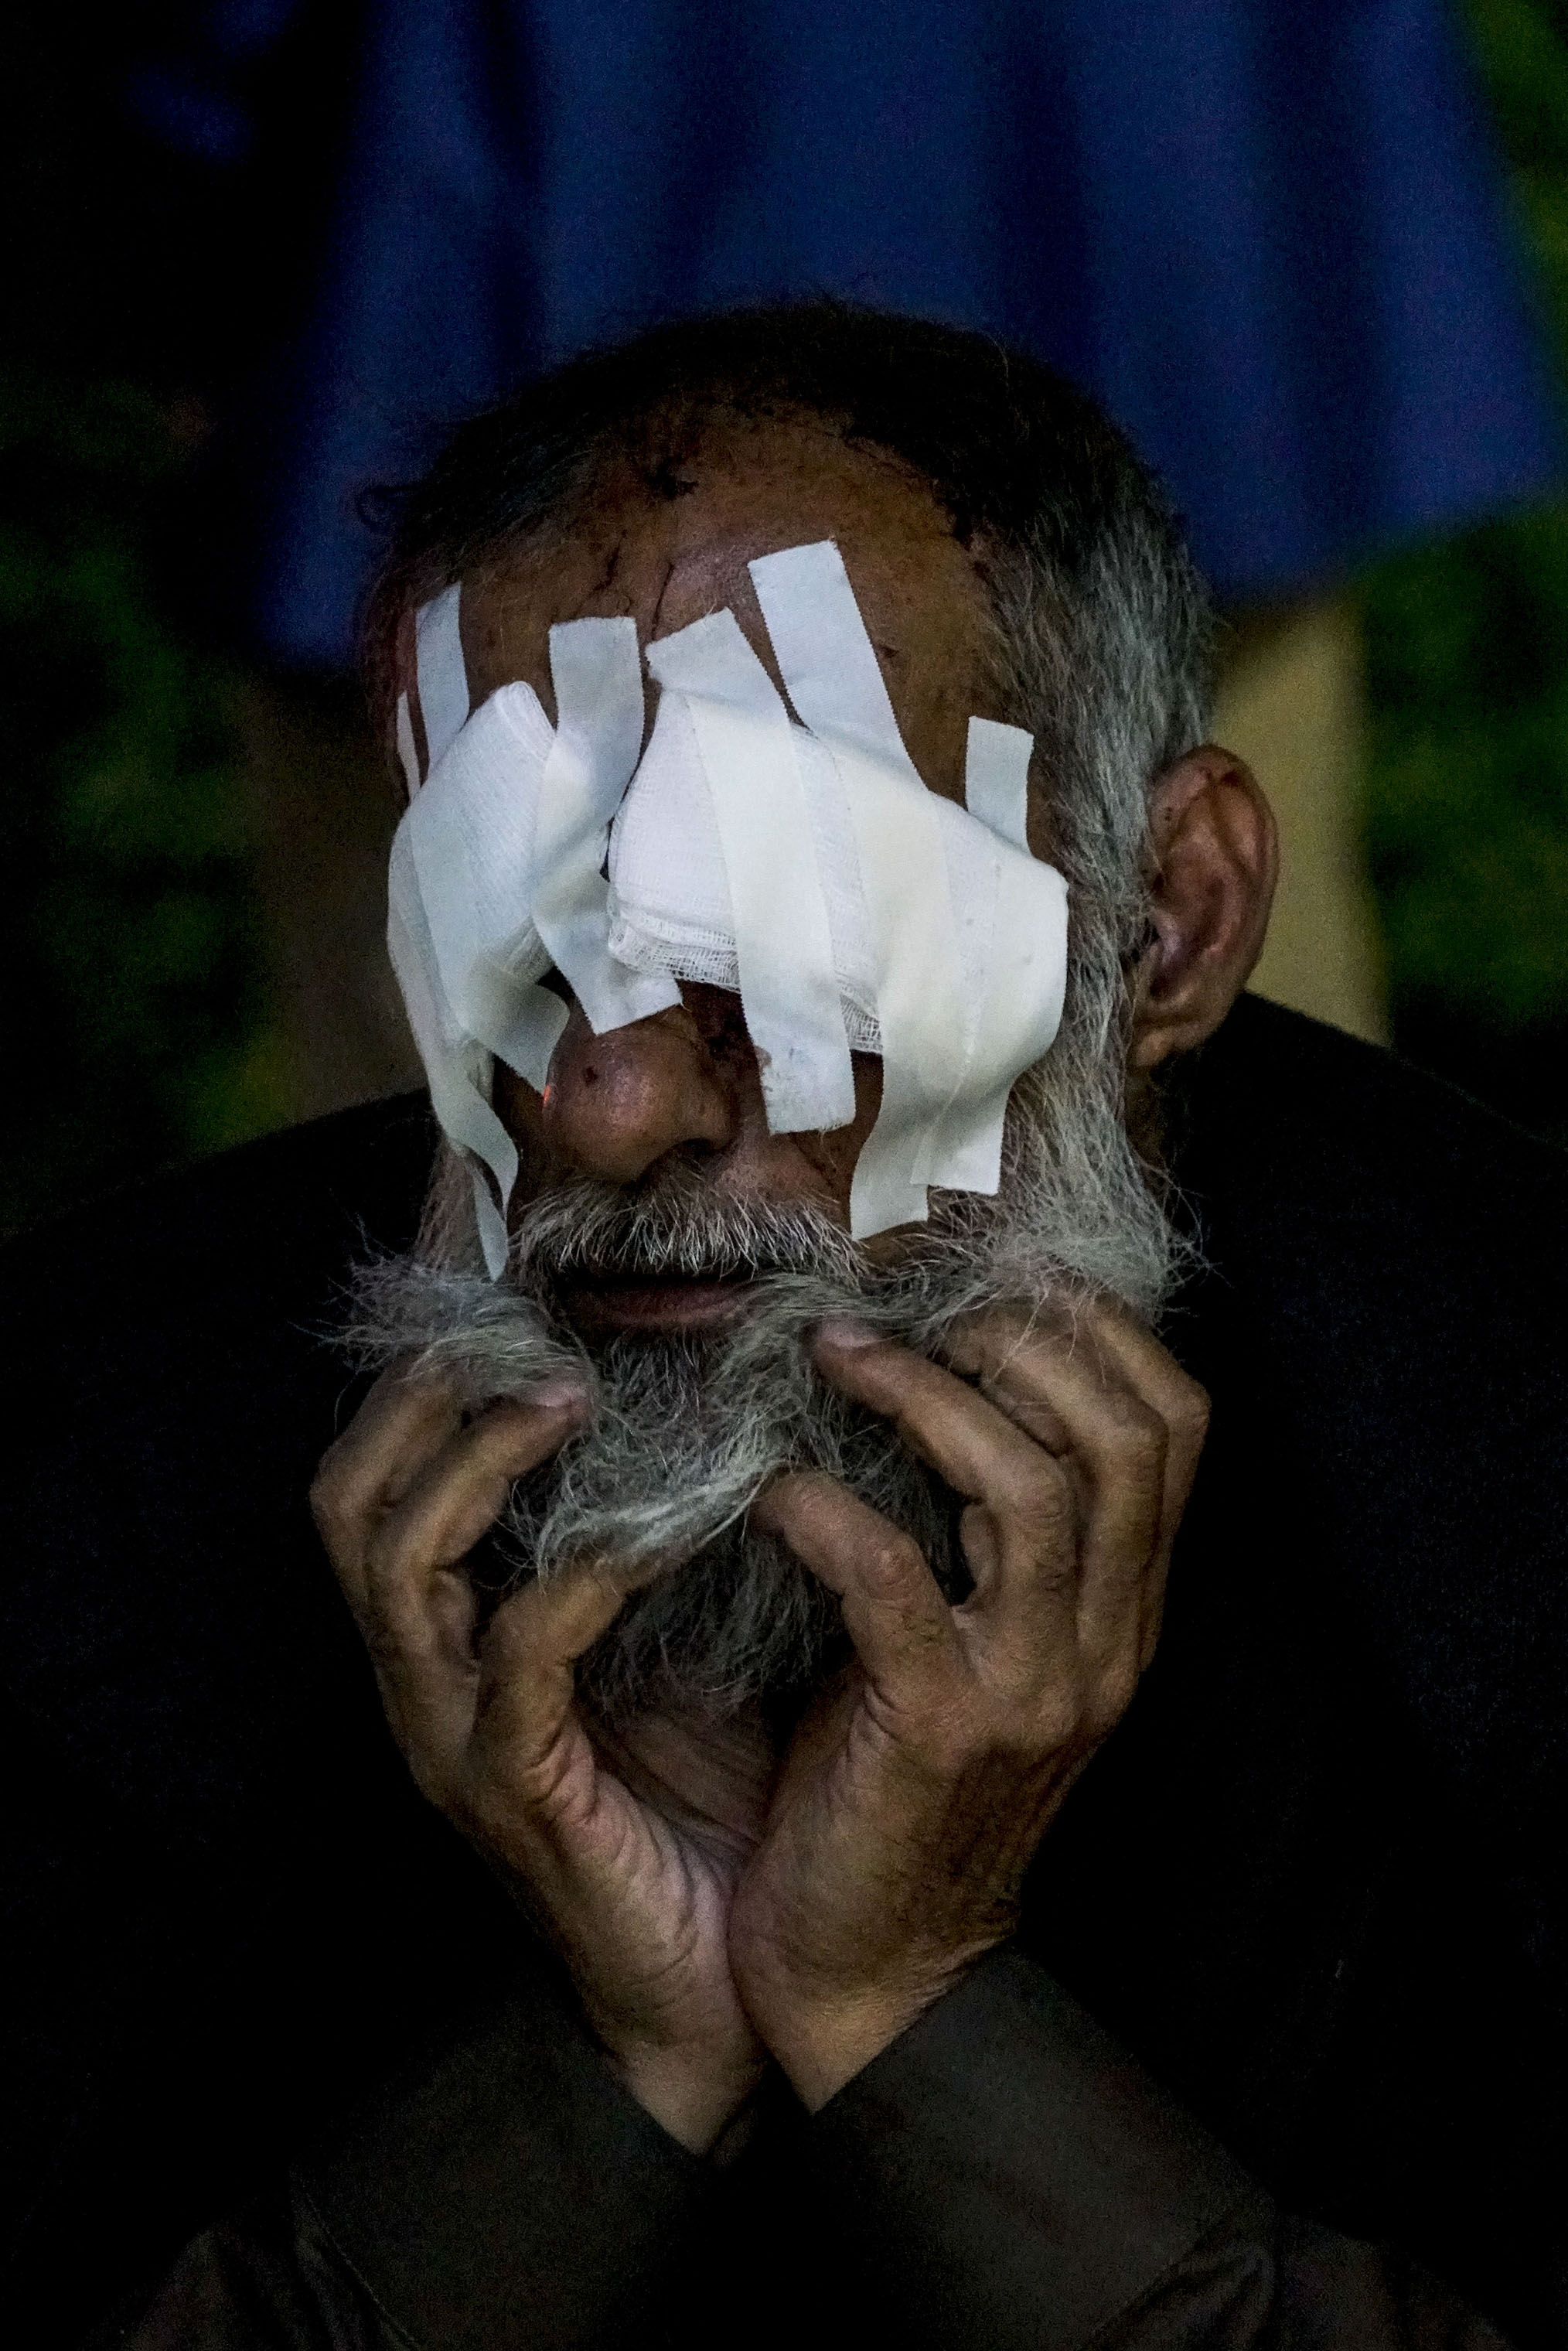 A man who was badly injured by shrapnel in Mosul waits for a taxi after being checked at the NGO hospital in Erbil in 2017.